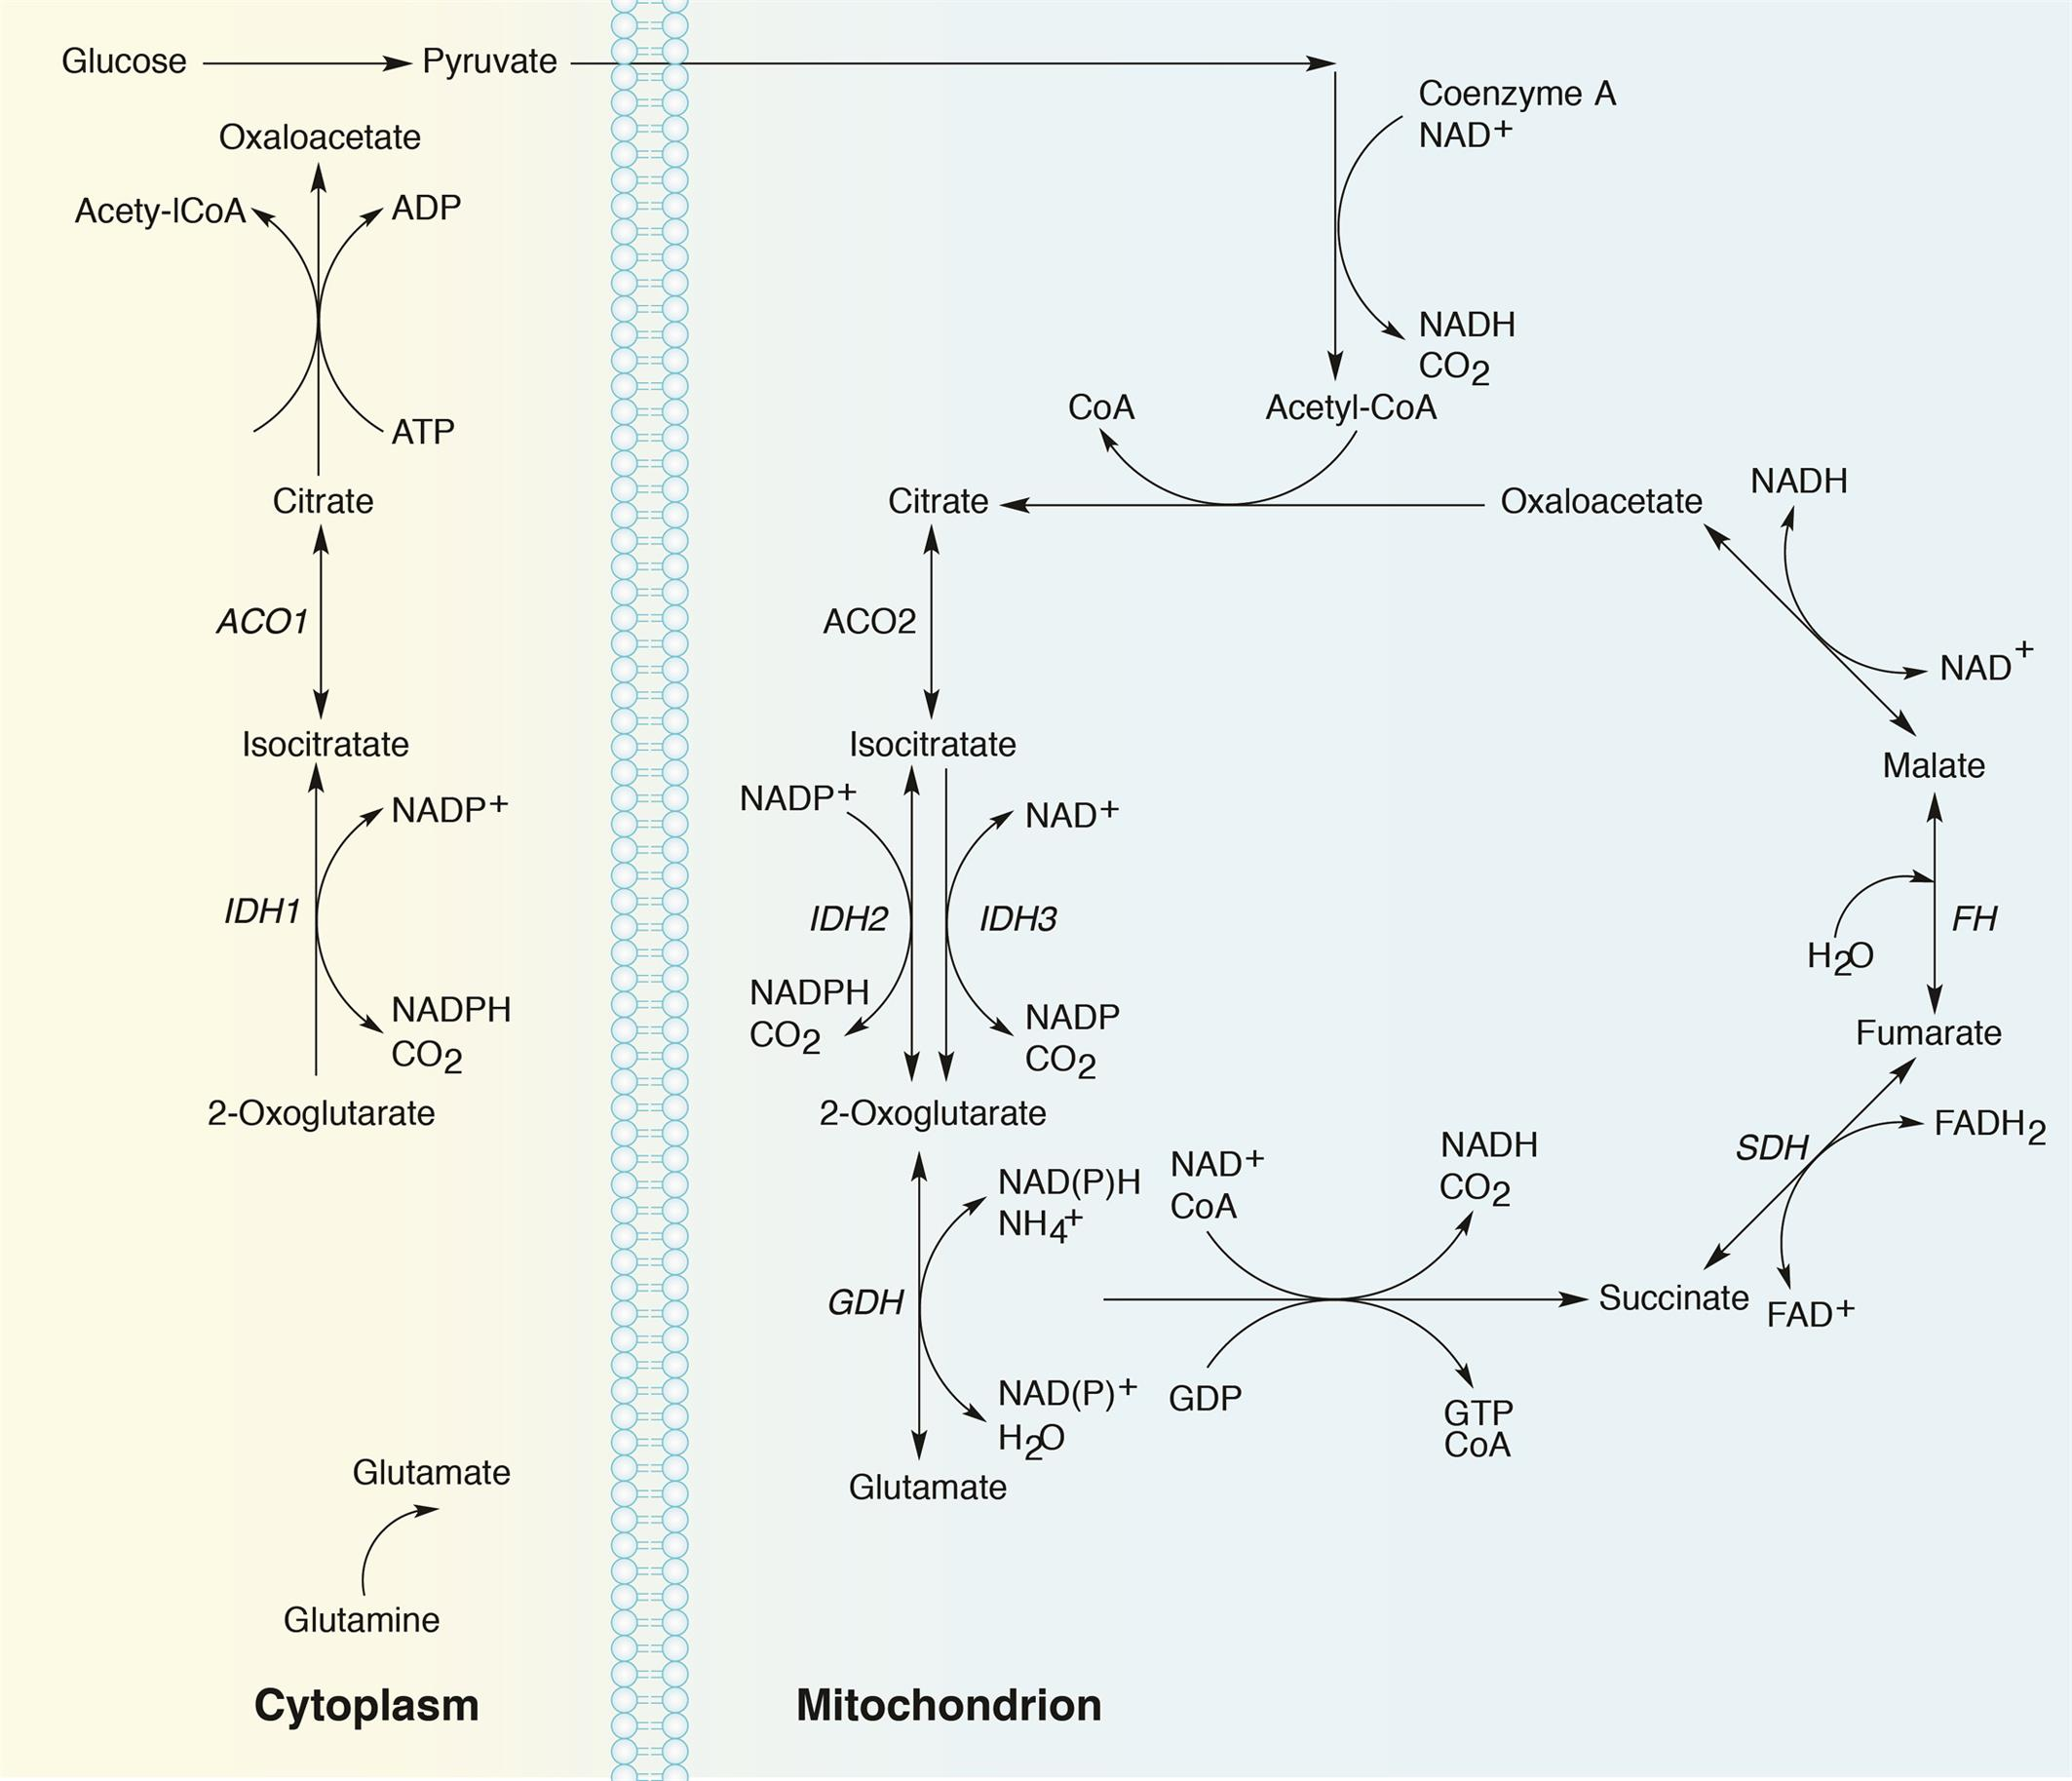 Function of IDH1/2 and IDH3 enzymes in the context of the tricarboxylic acid (TCA) cycle.